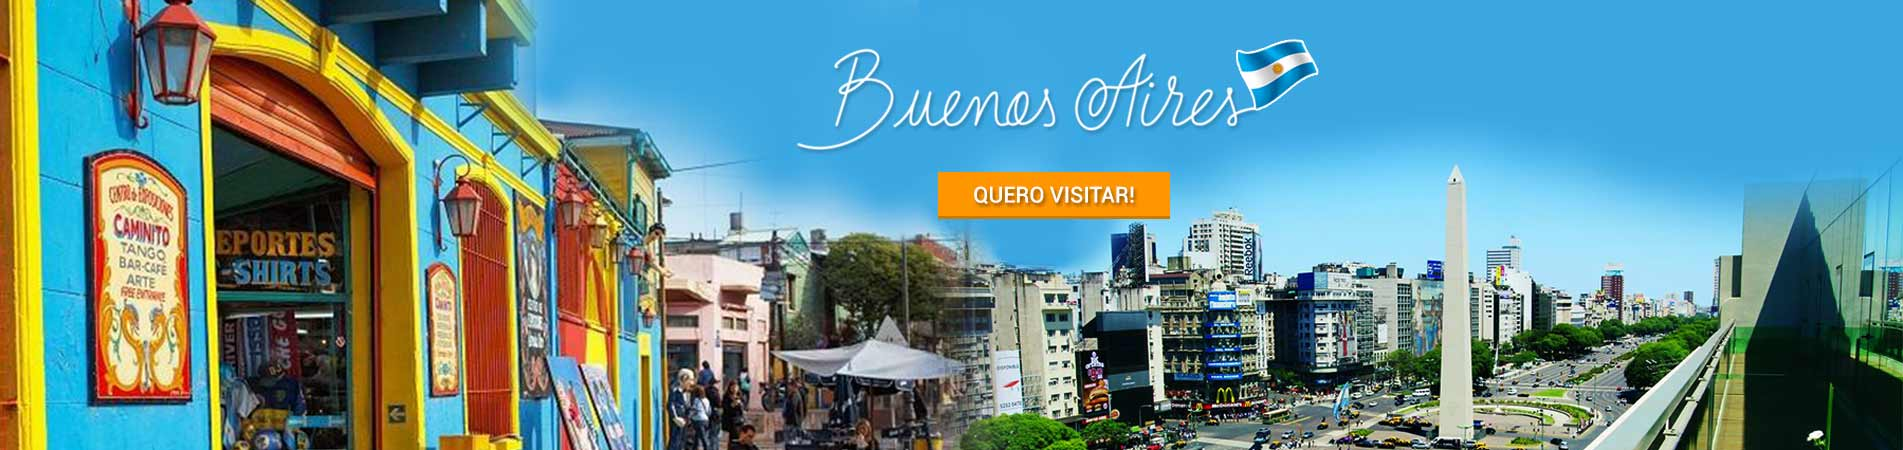 naja-turismo-banner-buenos-aires